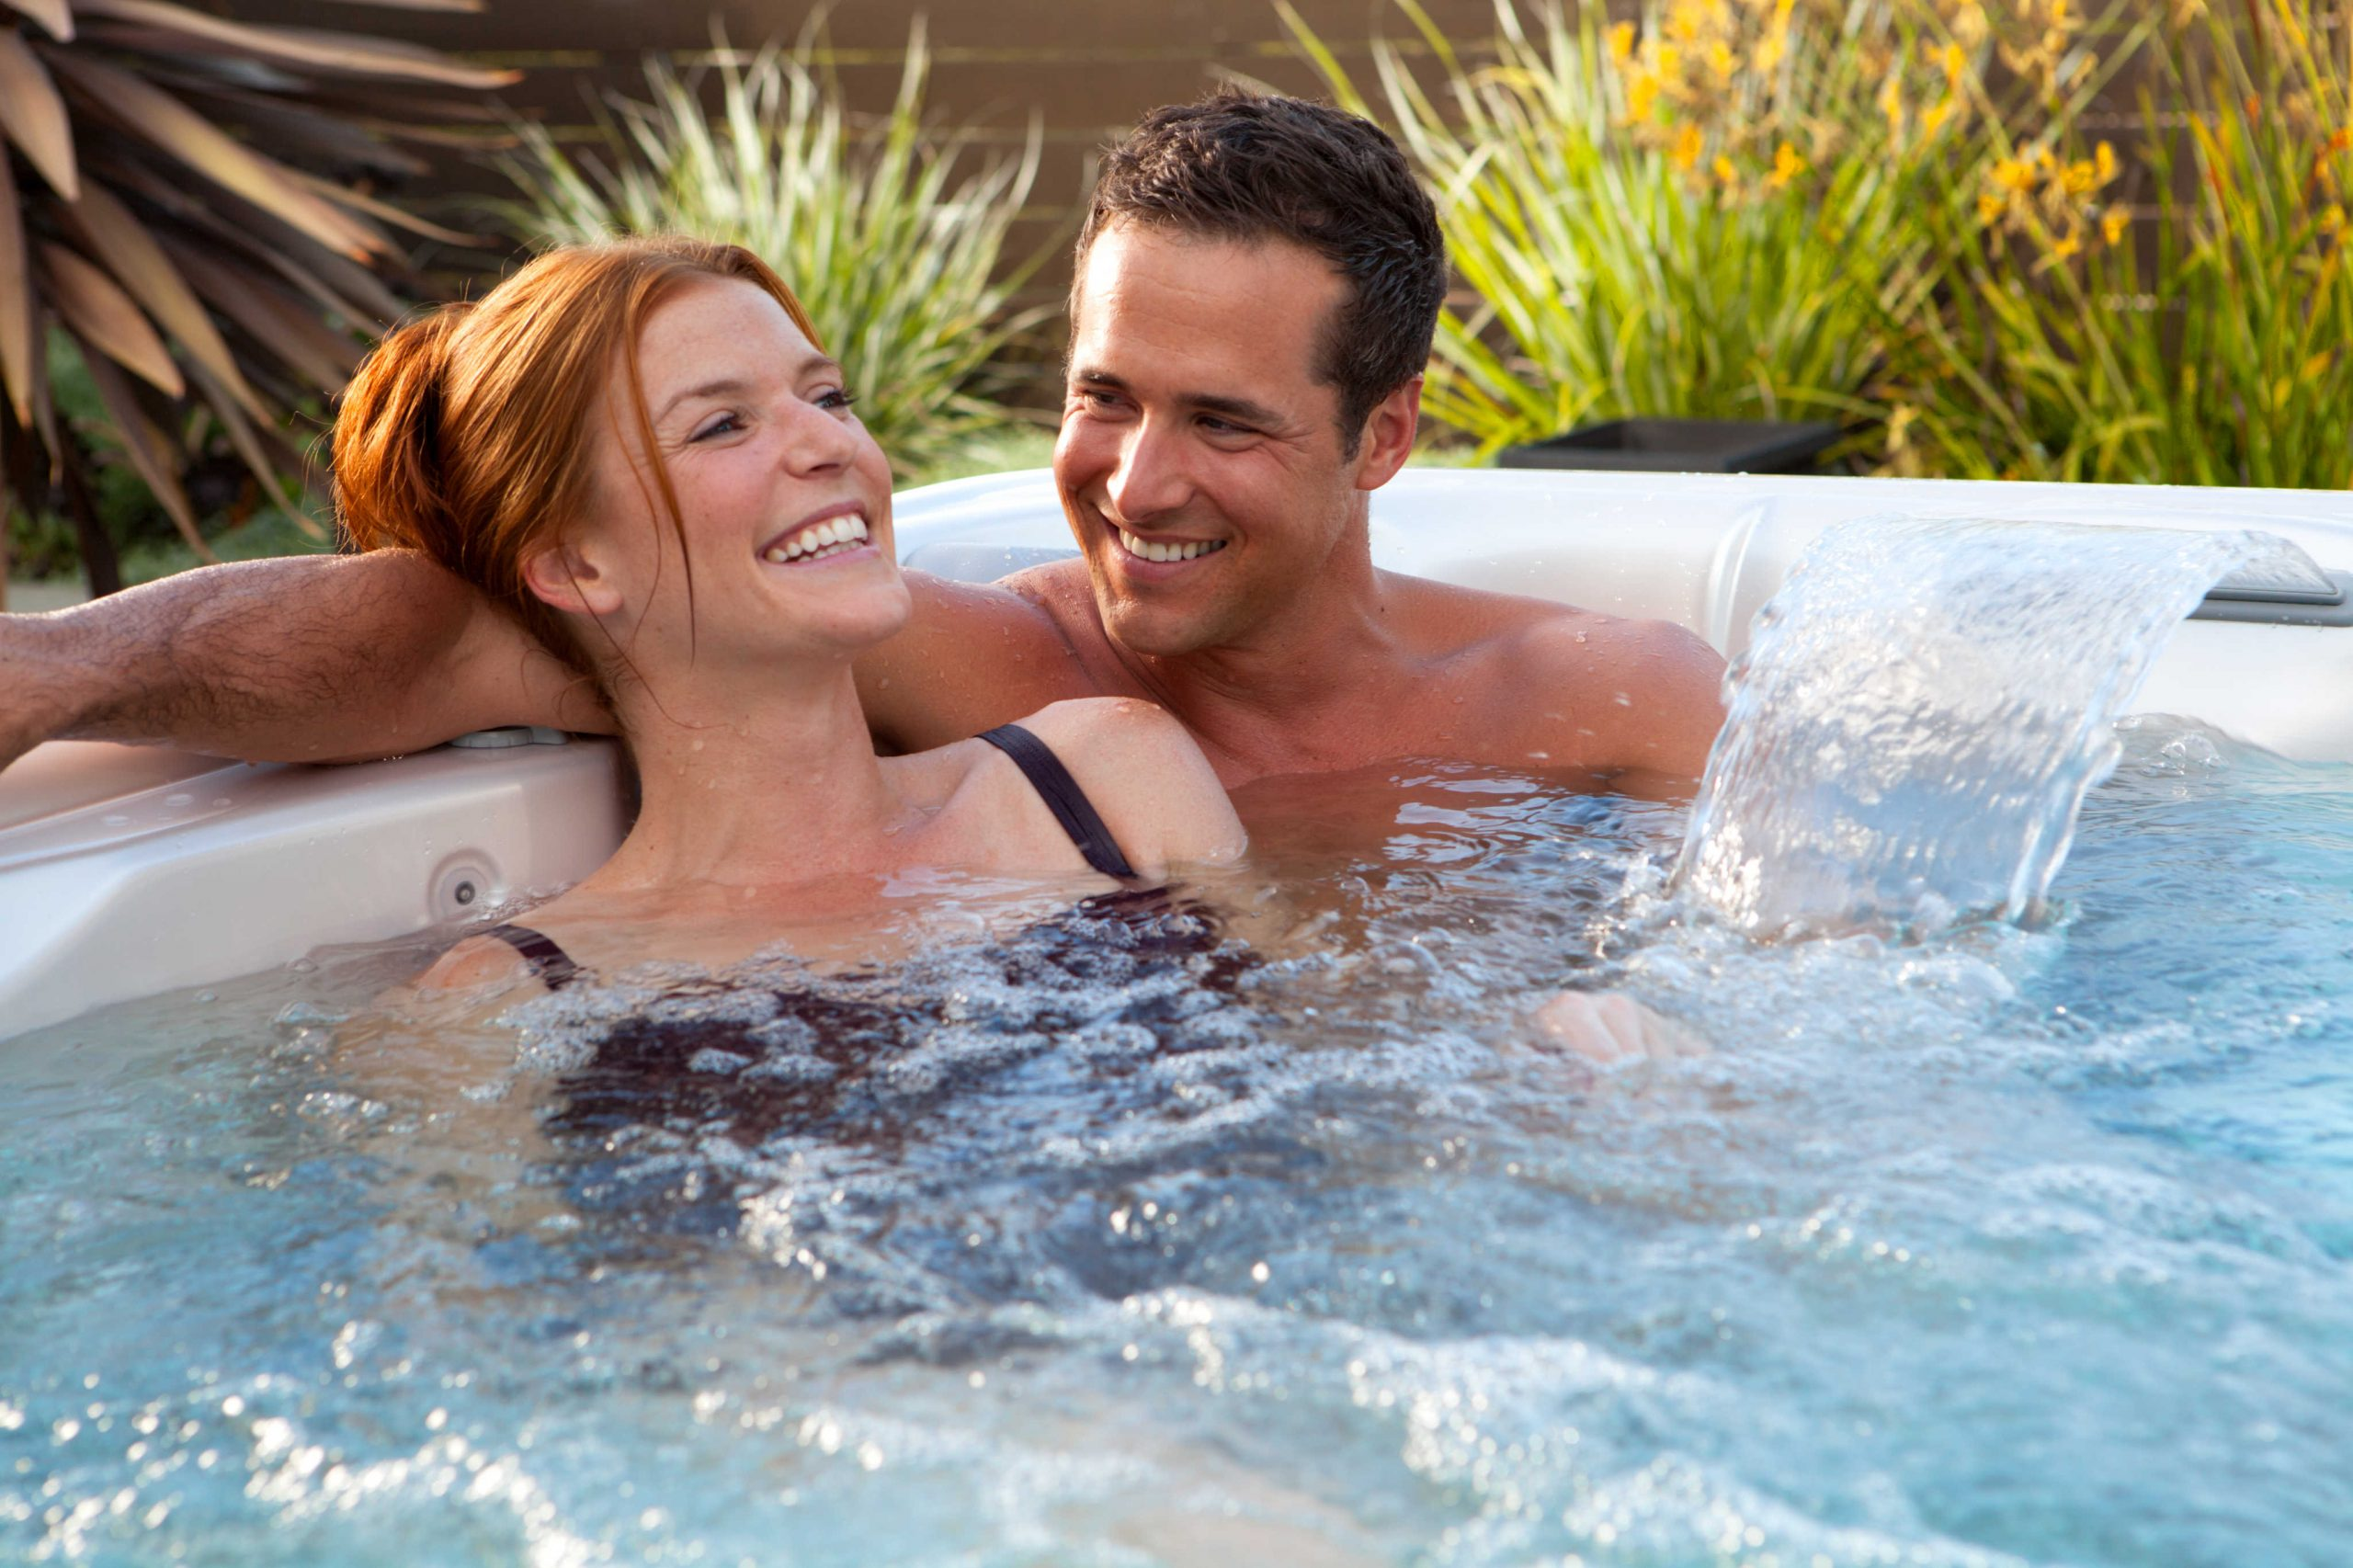 Fun Facts about Hot Tubs